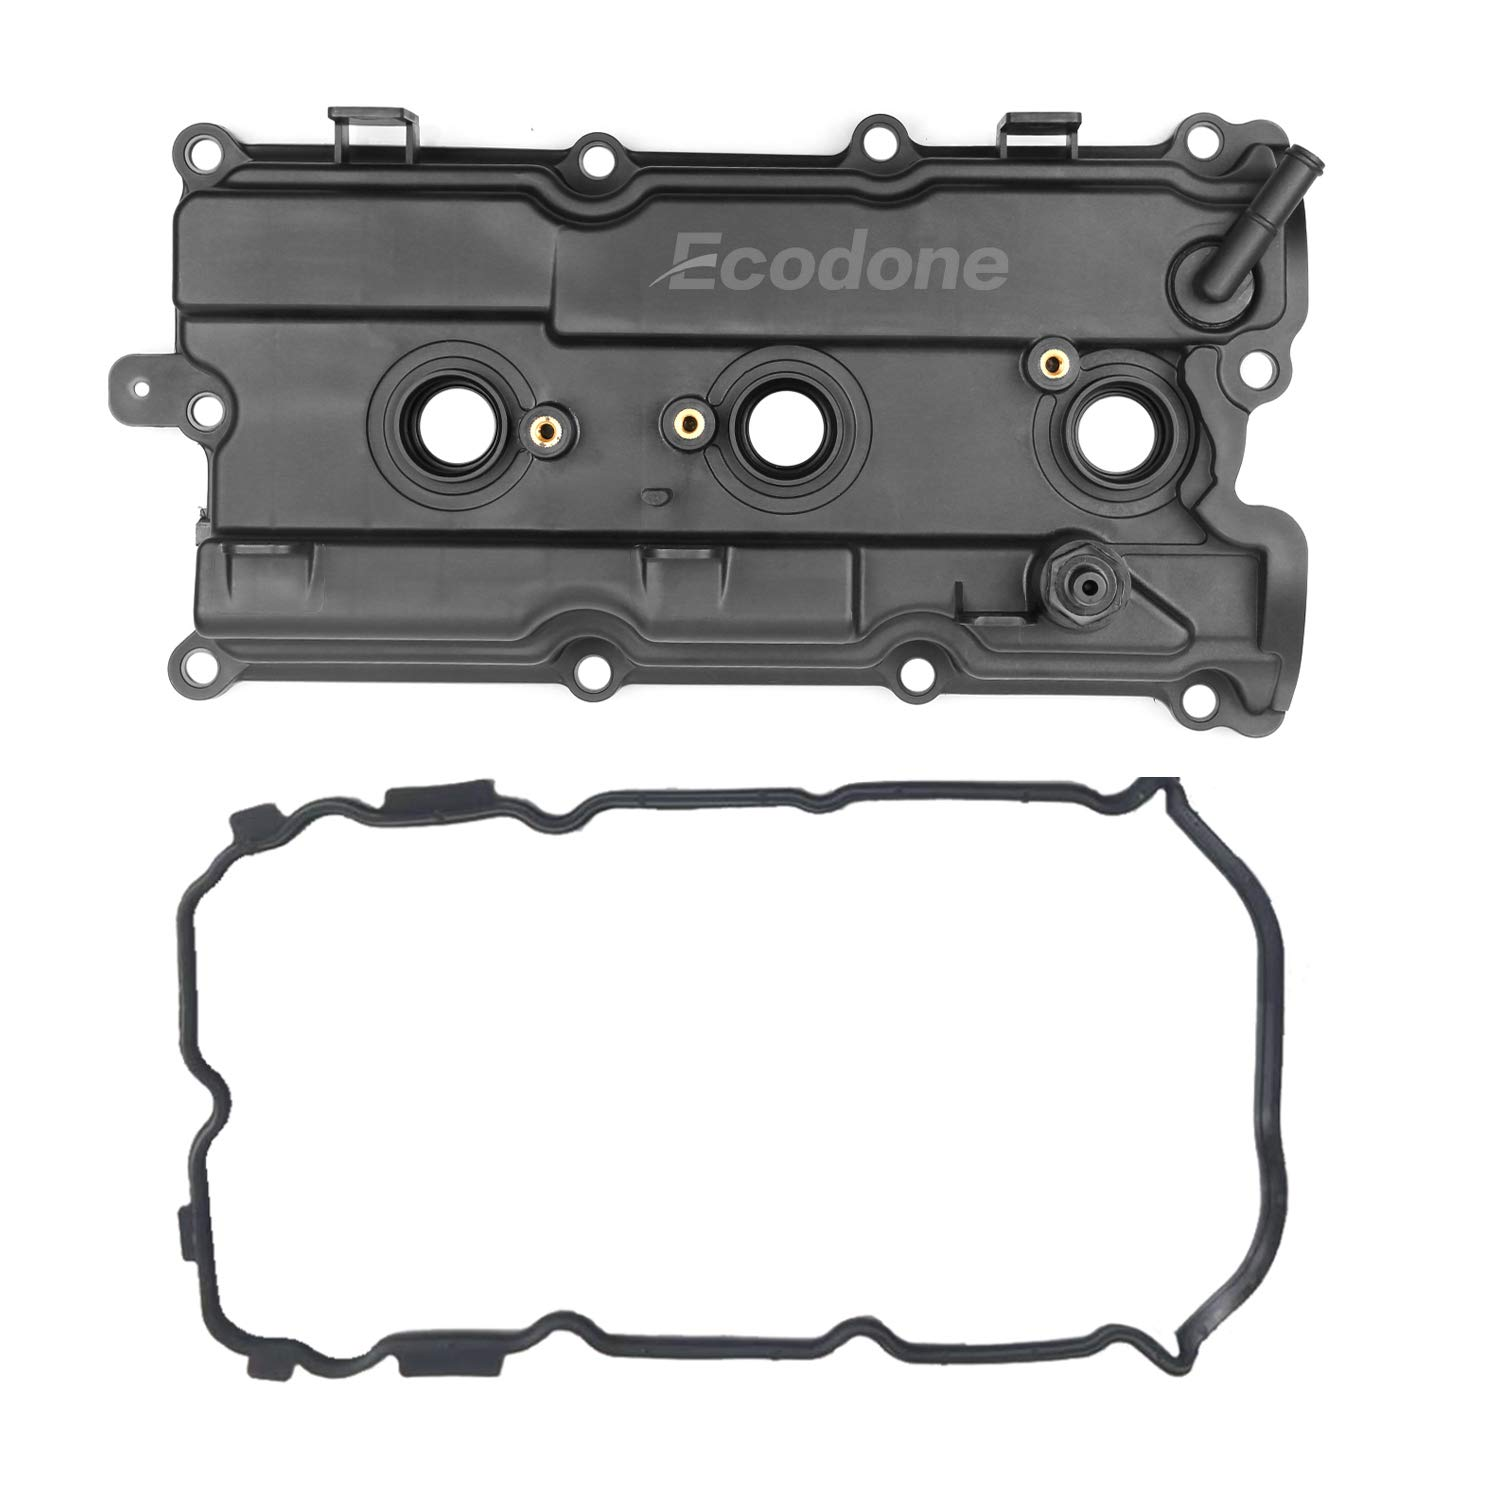 Left Side Engine Camshaft Valve Cover /&2 Gaskets for 02-09 Nissan Murano Altima Maxima Quest 3.5L,PCV Cover fits INFINITI I35 3.5L by Ecodone